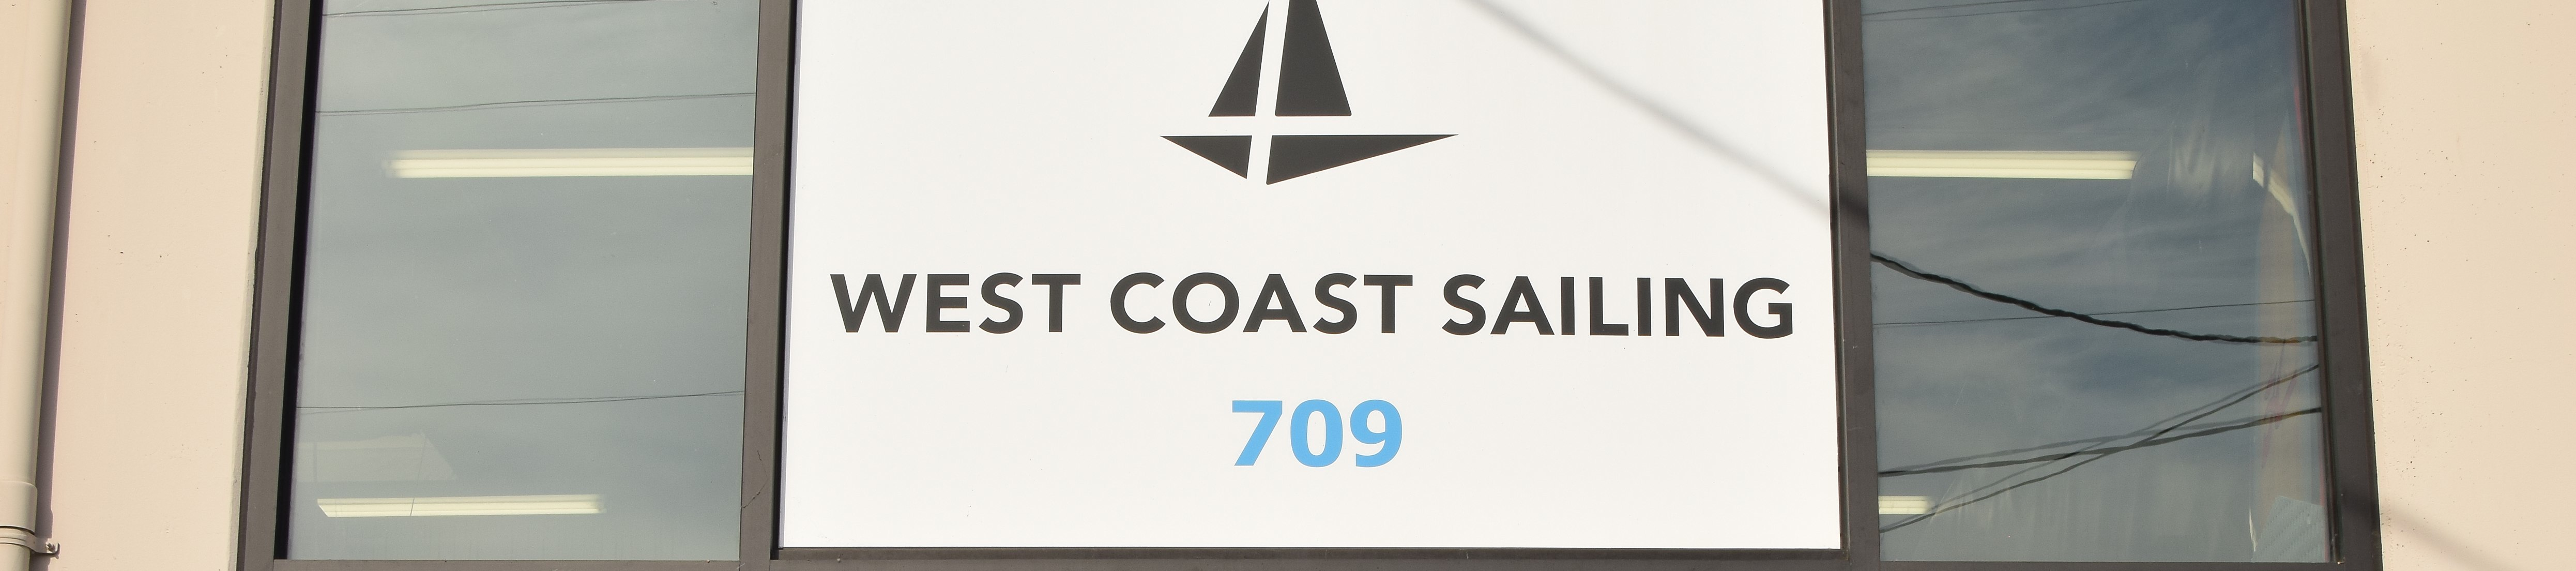 banner-west-coast-sailing.jpg